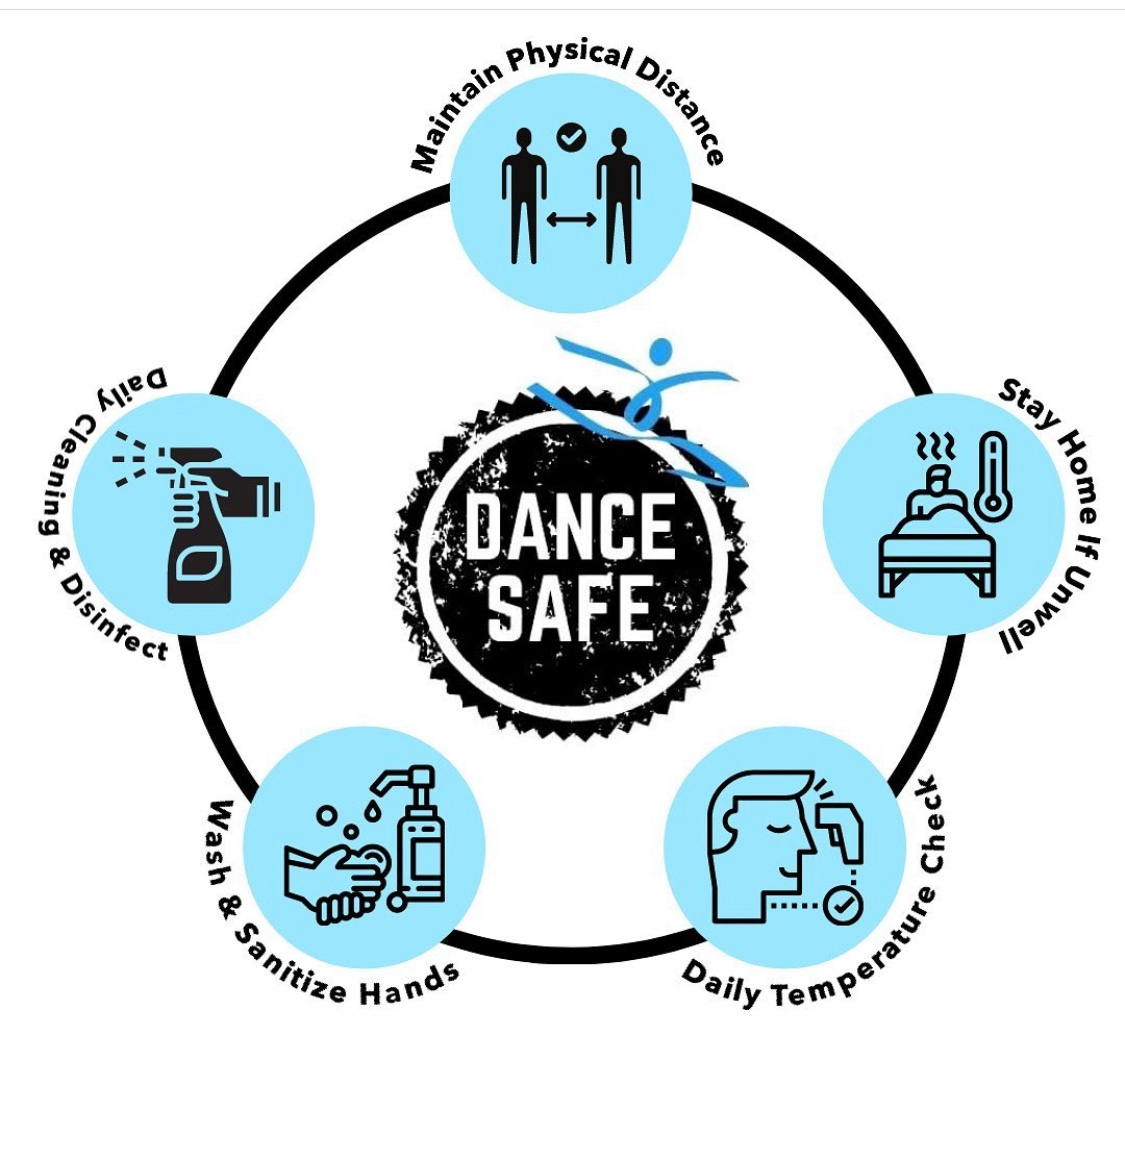 Register with confidence at TDC!   TDC follows the Ontario's dance & performance arts school workplace guidelines for COVID-19. We are dedicated to keeping our studio safe for all our staff and dancers!  #staysafe #safespace⁠ #danceMilton #tdcmilton #thedanceclass #registernow https://t.co/udIQnBJZuc